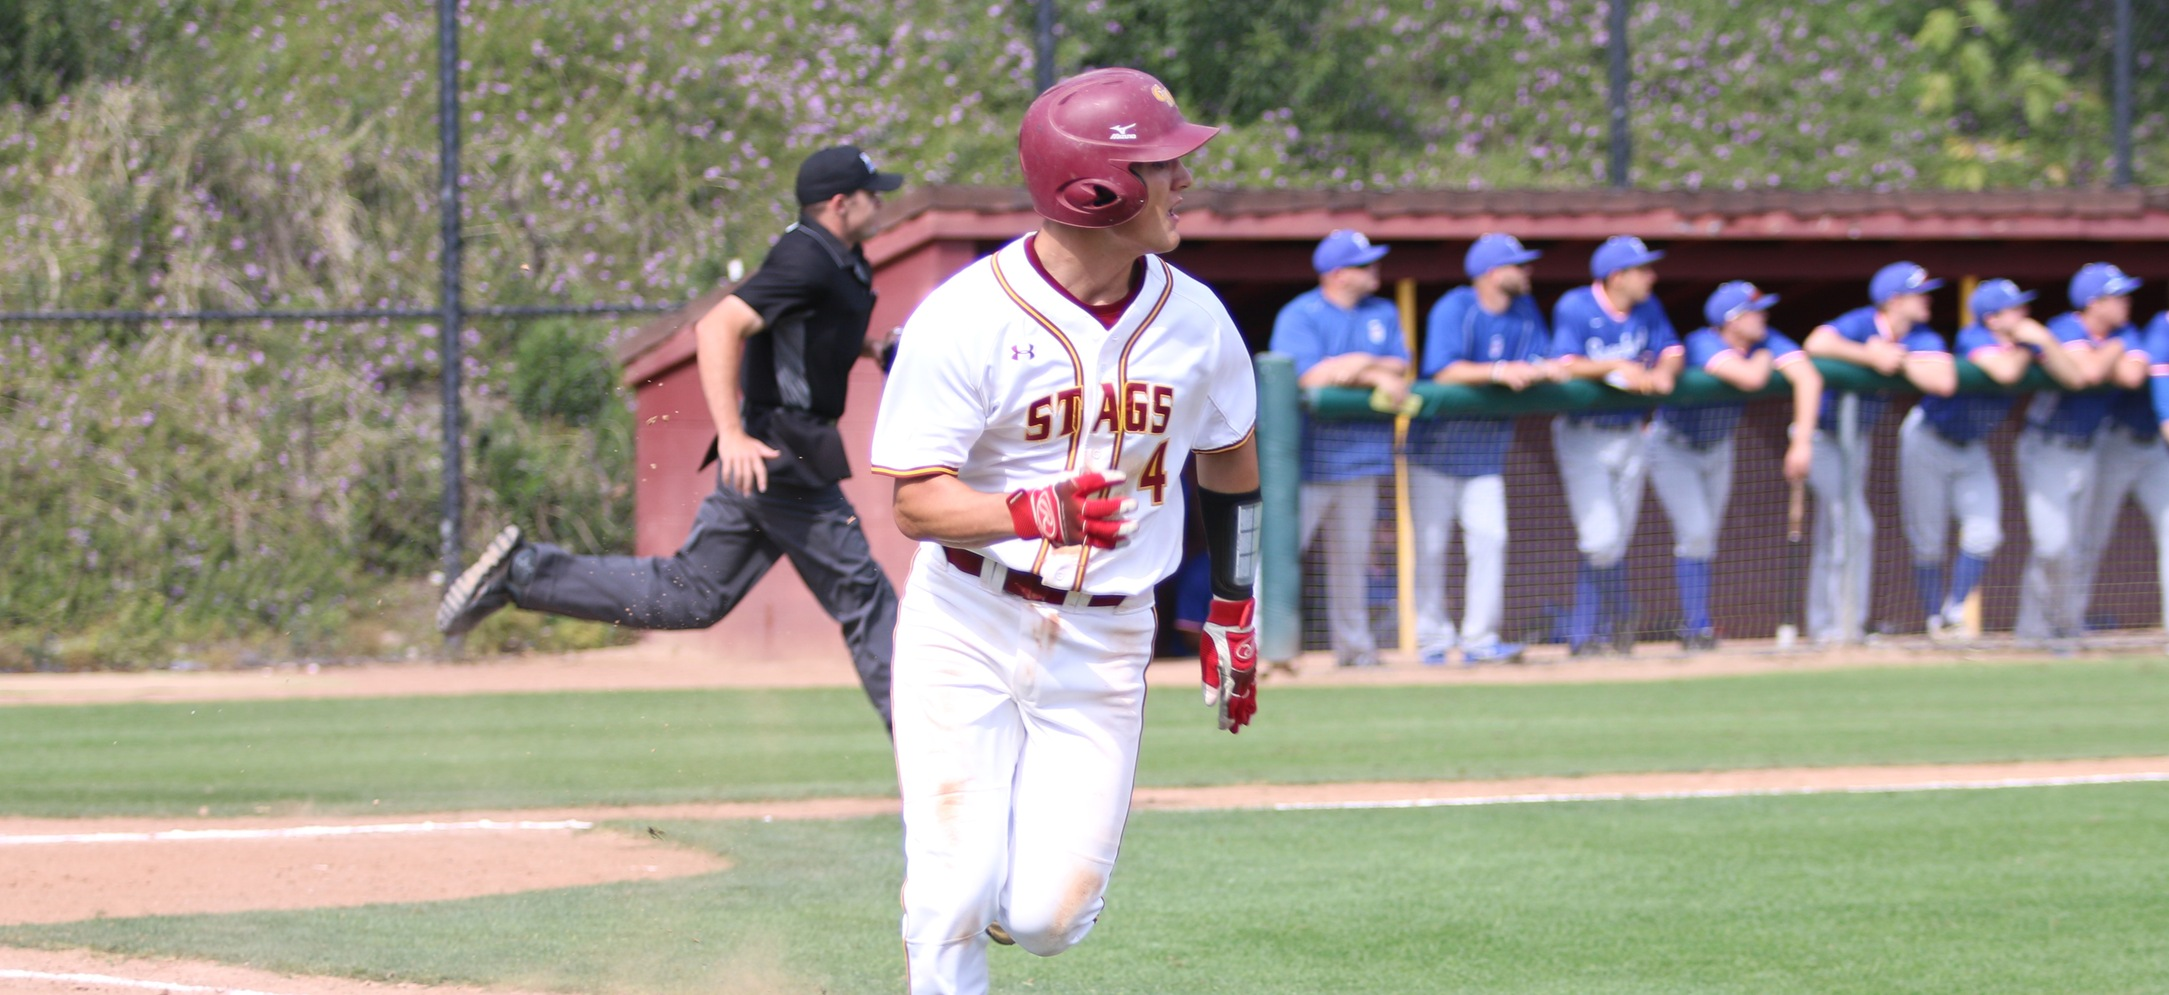 Chapman Takes Two From Stags to Sweep Weekend Series